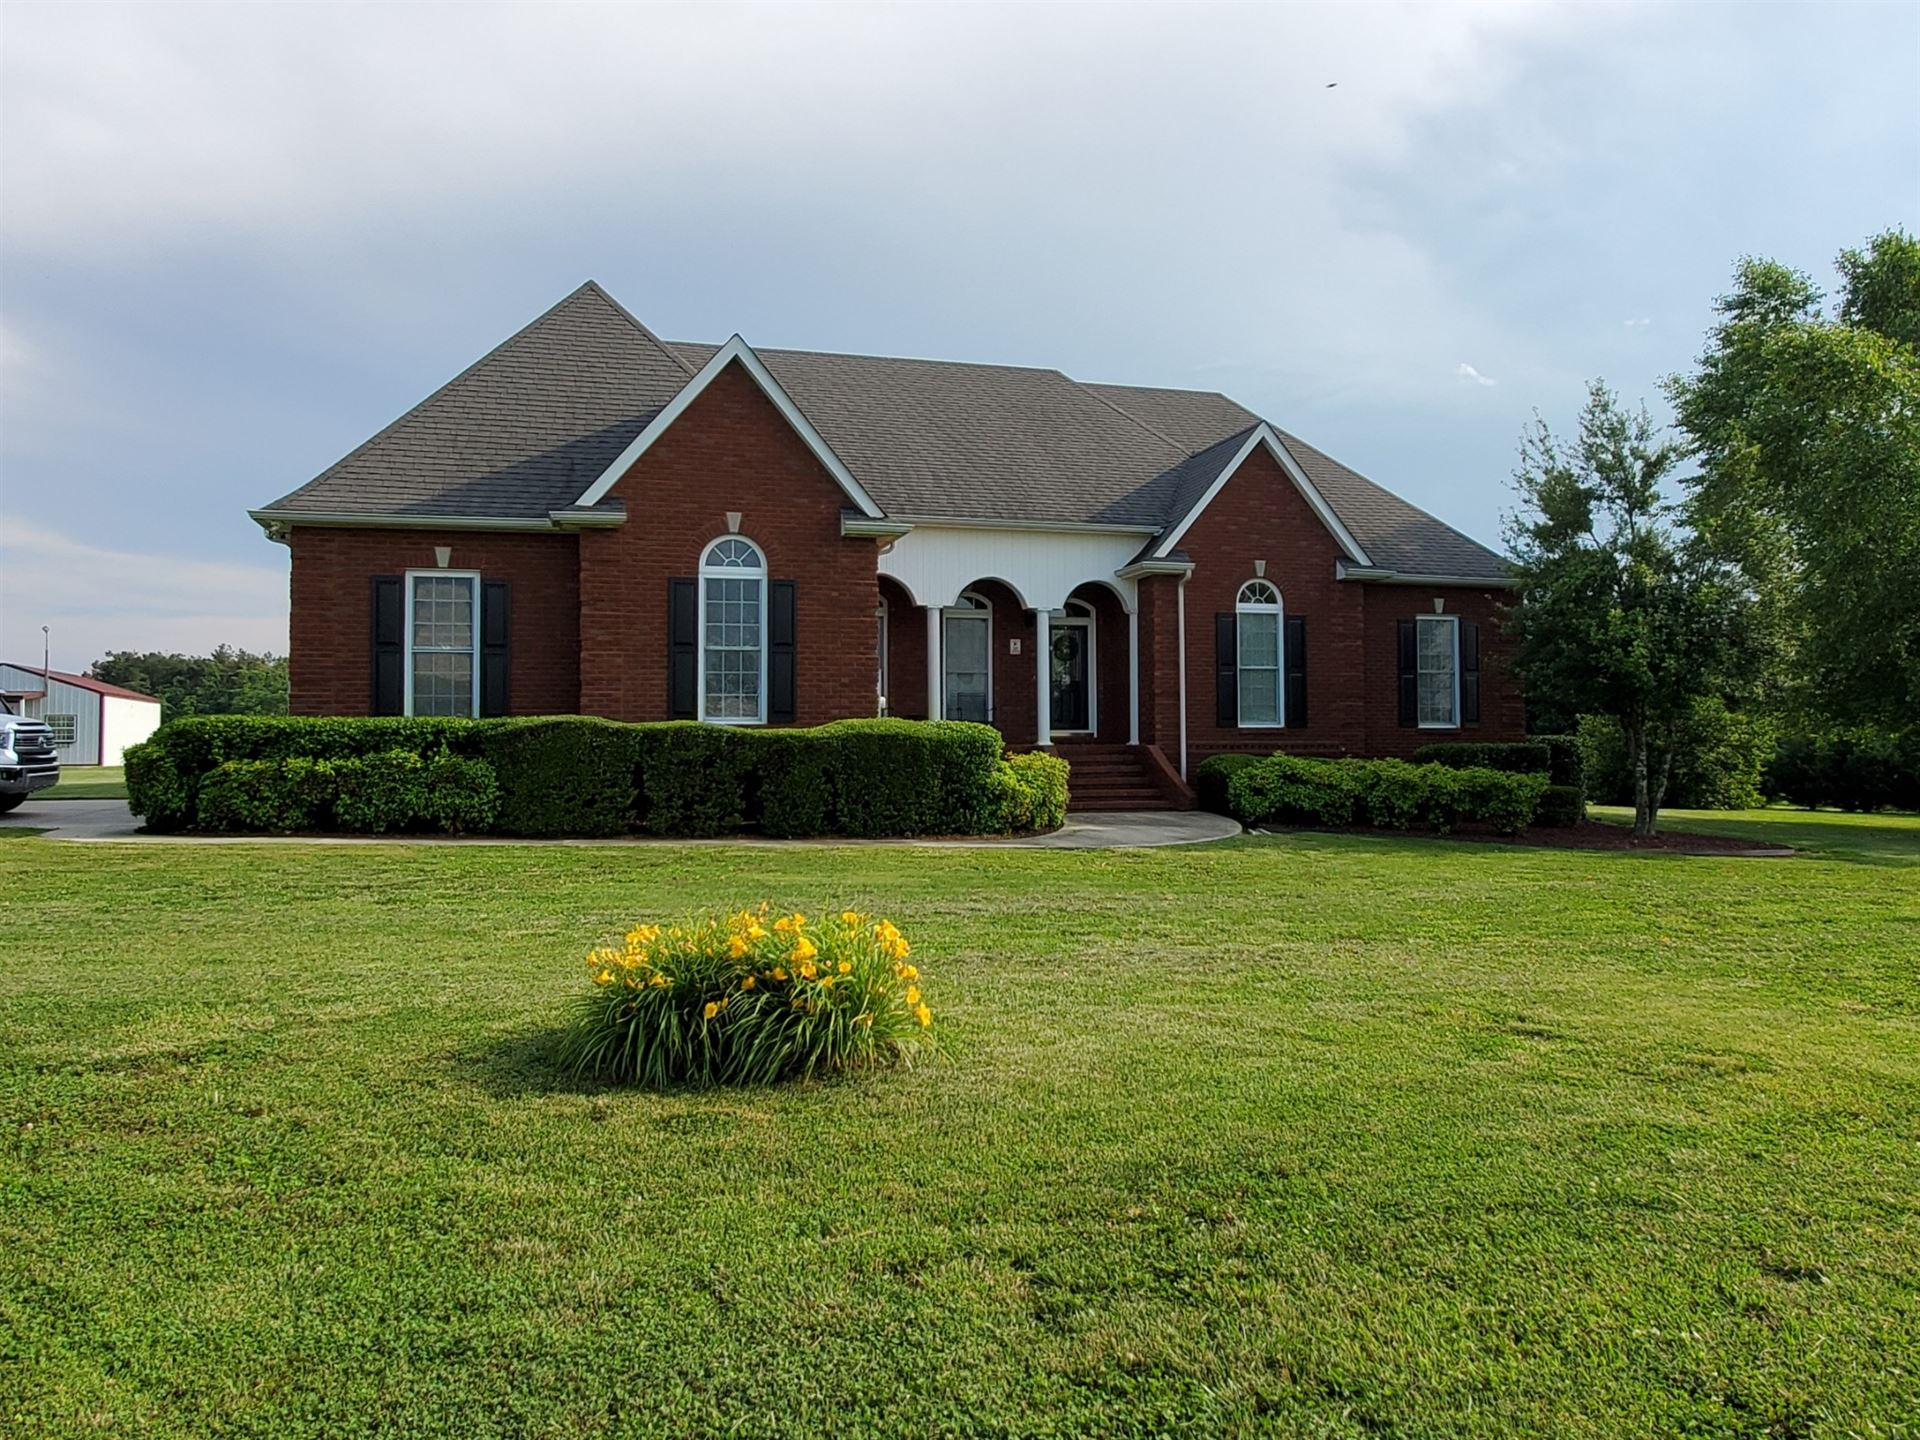 Photo of 2707 16th Model Rd, Manchester, TN 37355 (MLS # 2263255)